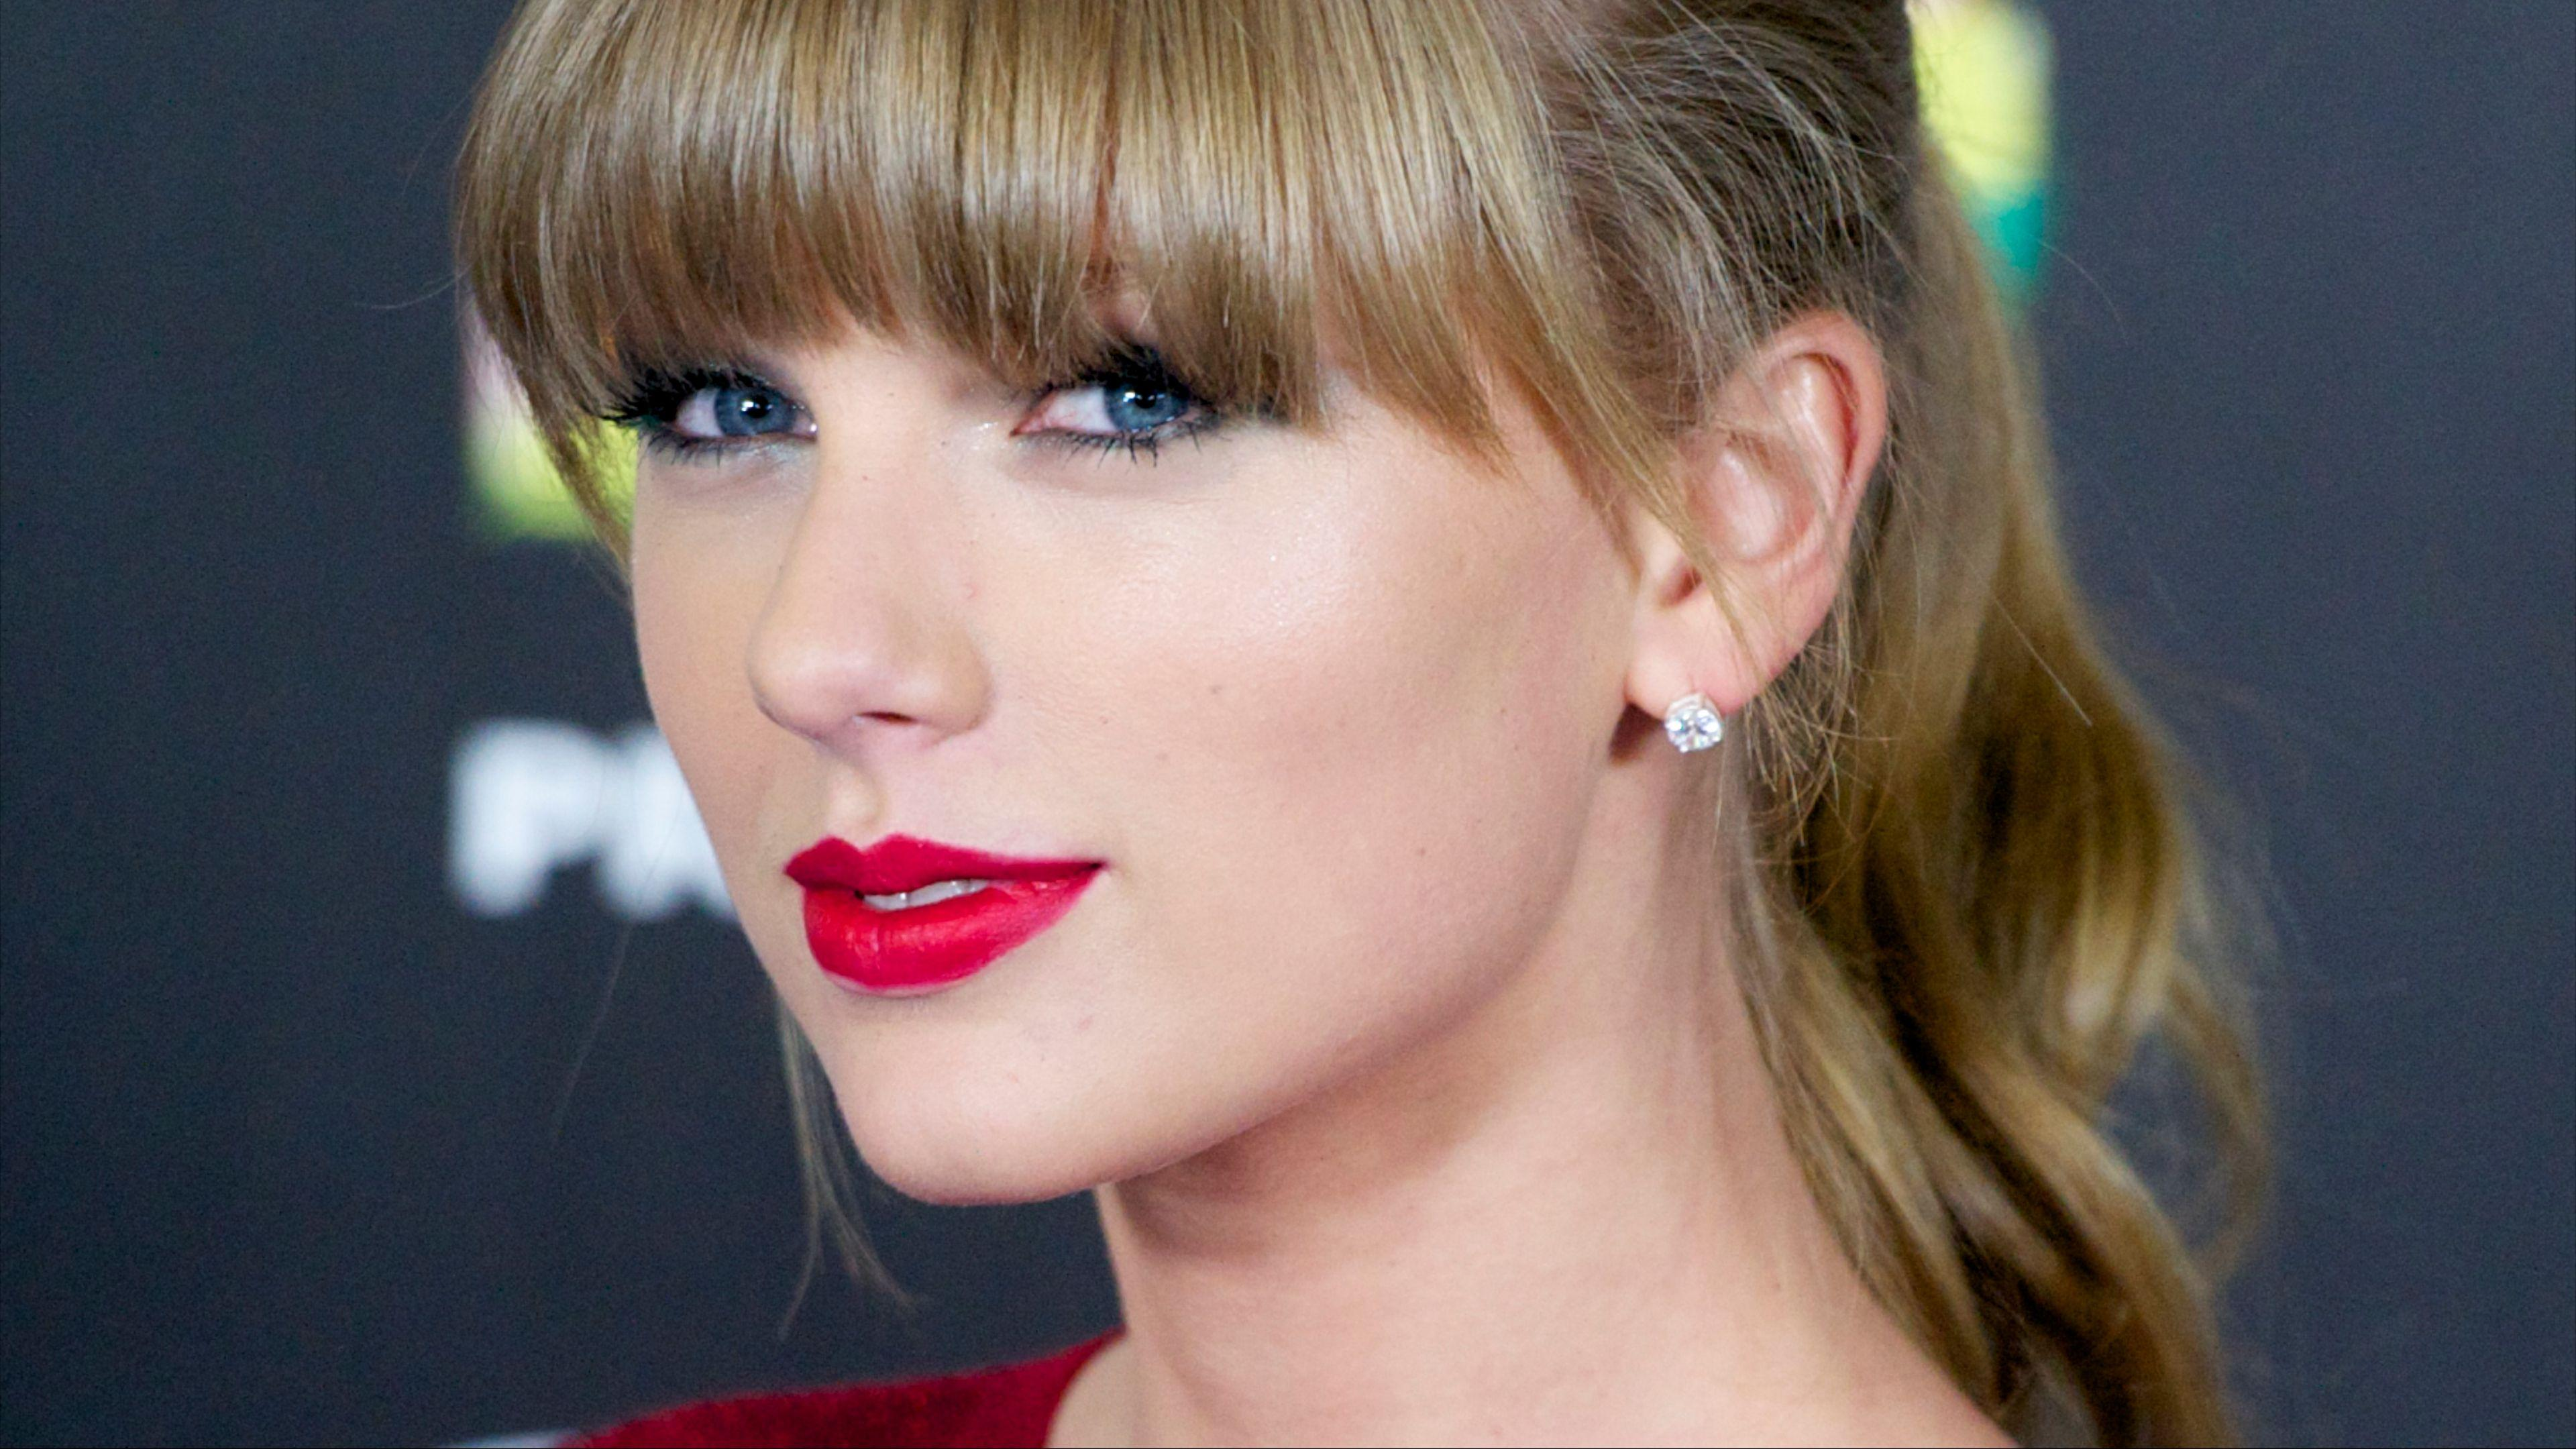 Taylor swift 2018 wallpapers wallpaper cave 2017 4k taylor swift wallpaper free 4k wallpaper voltagebd Gallery